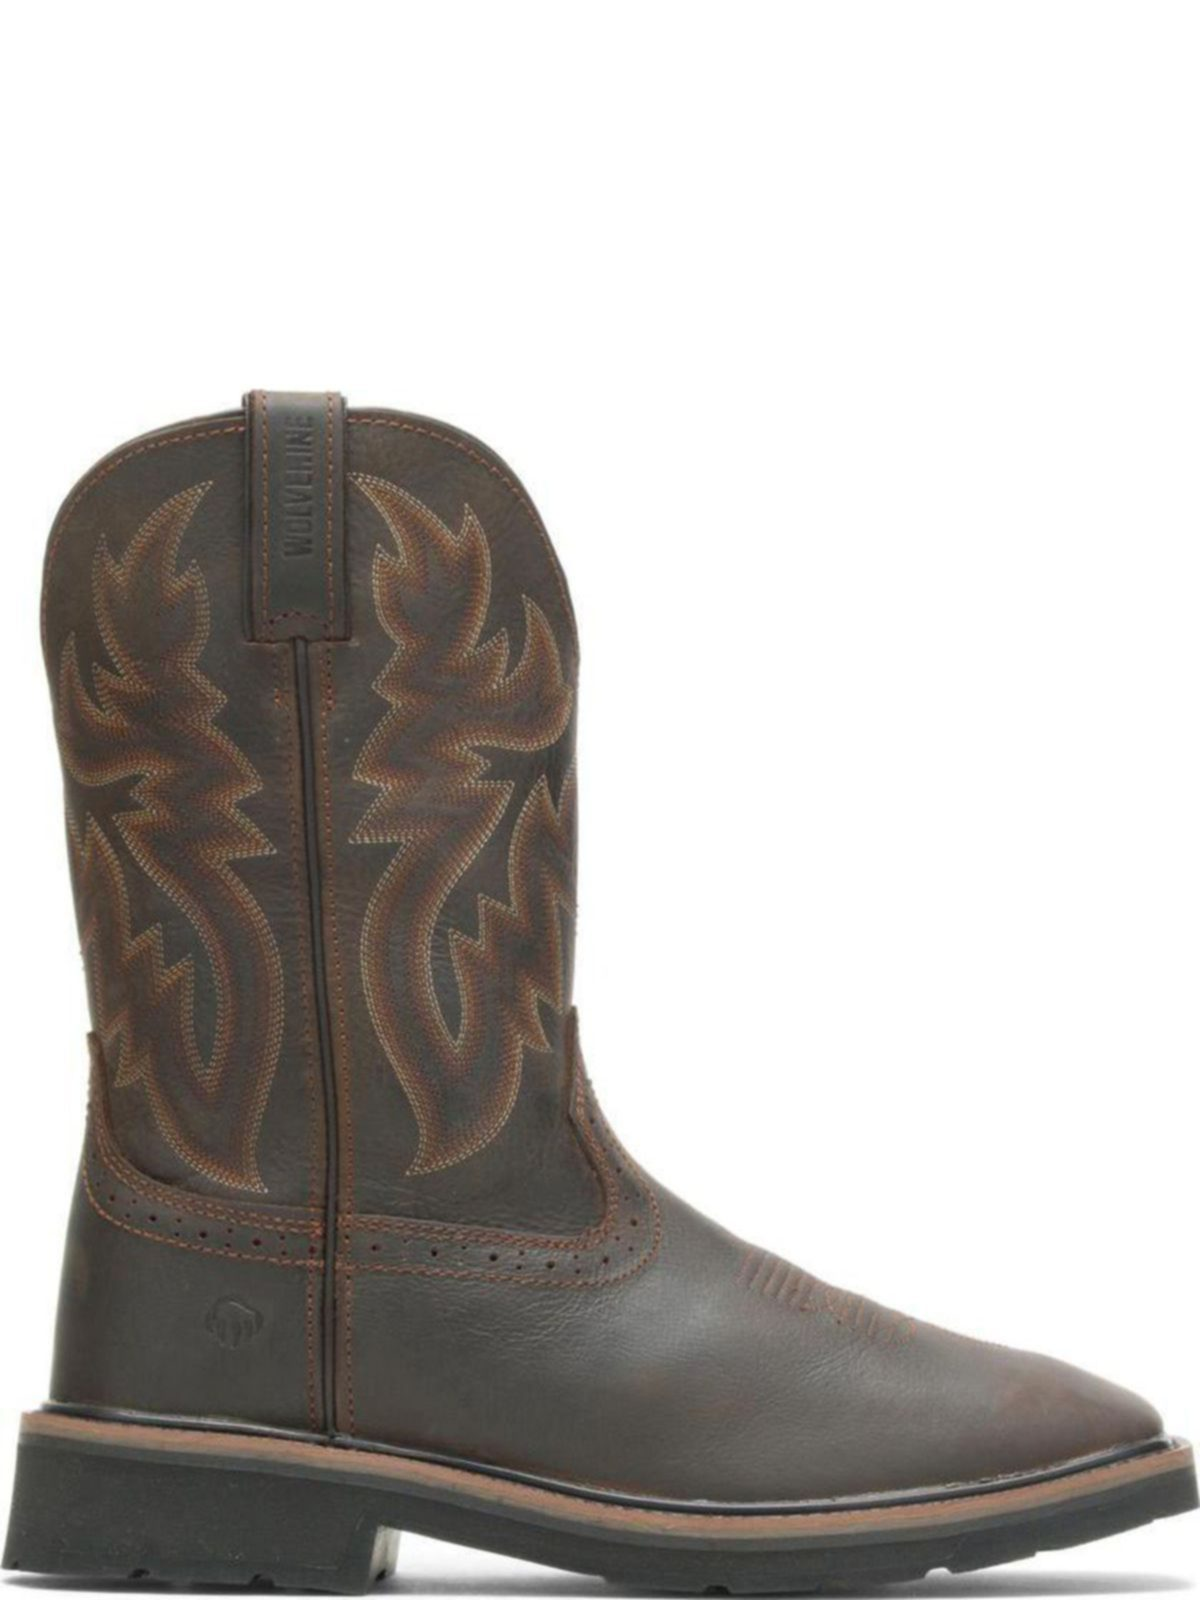 ac2c7d76c94 Wolverine Mens Rancher Square-Toe Wellington W10704